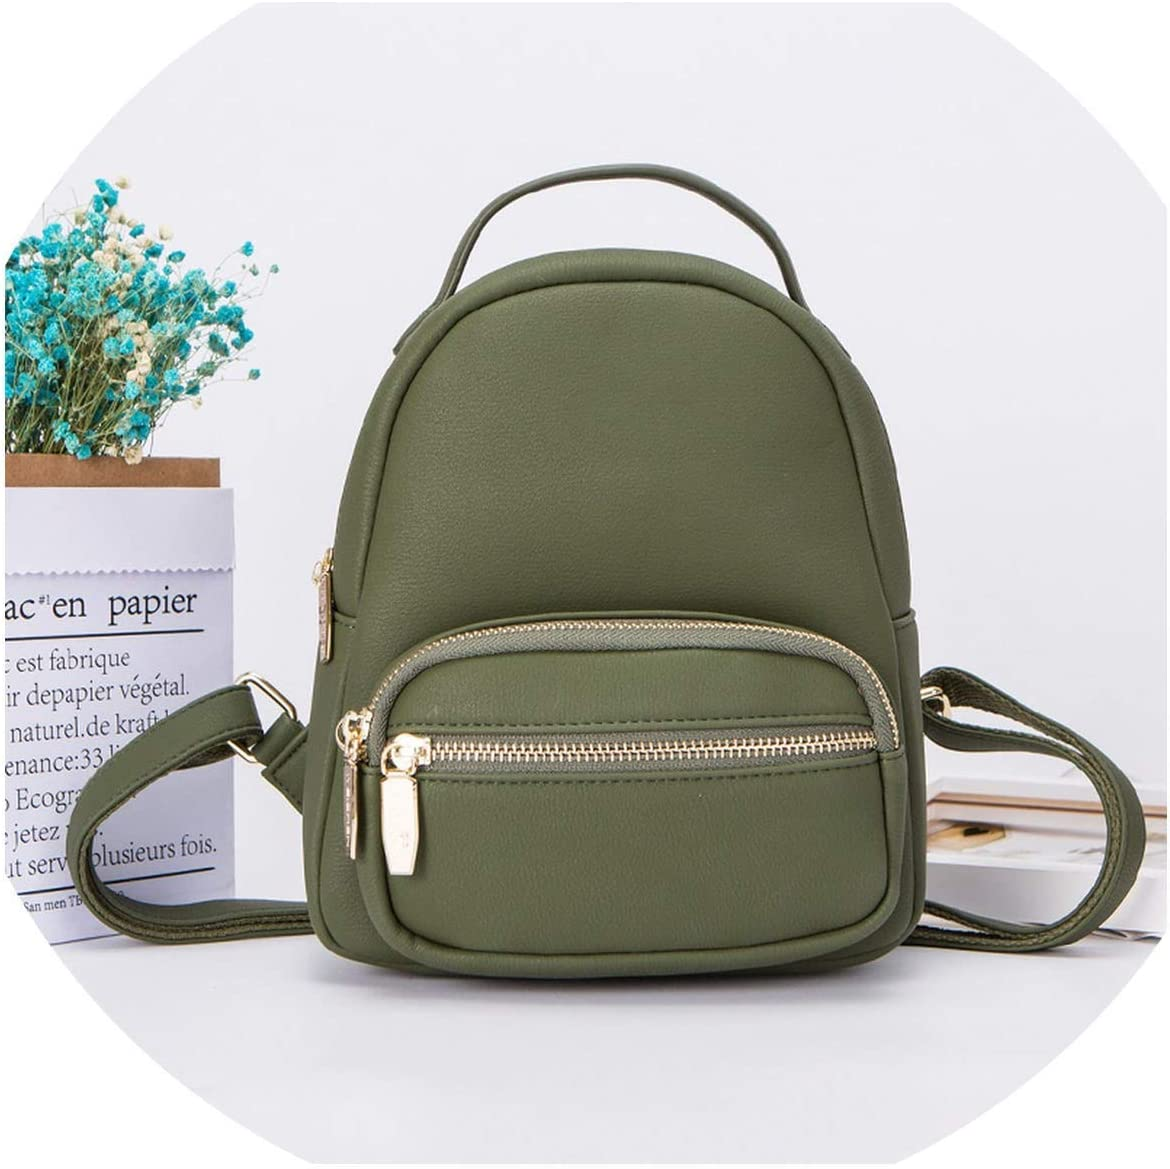 OPJKZSA New Many Departments Zaino da Donna in Pelle Morbida Touch Zaino da Donna Borsa a Tracolla Borsa da Donna di Moda Green